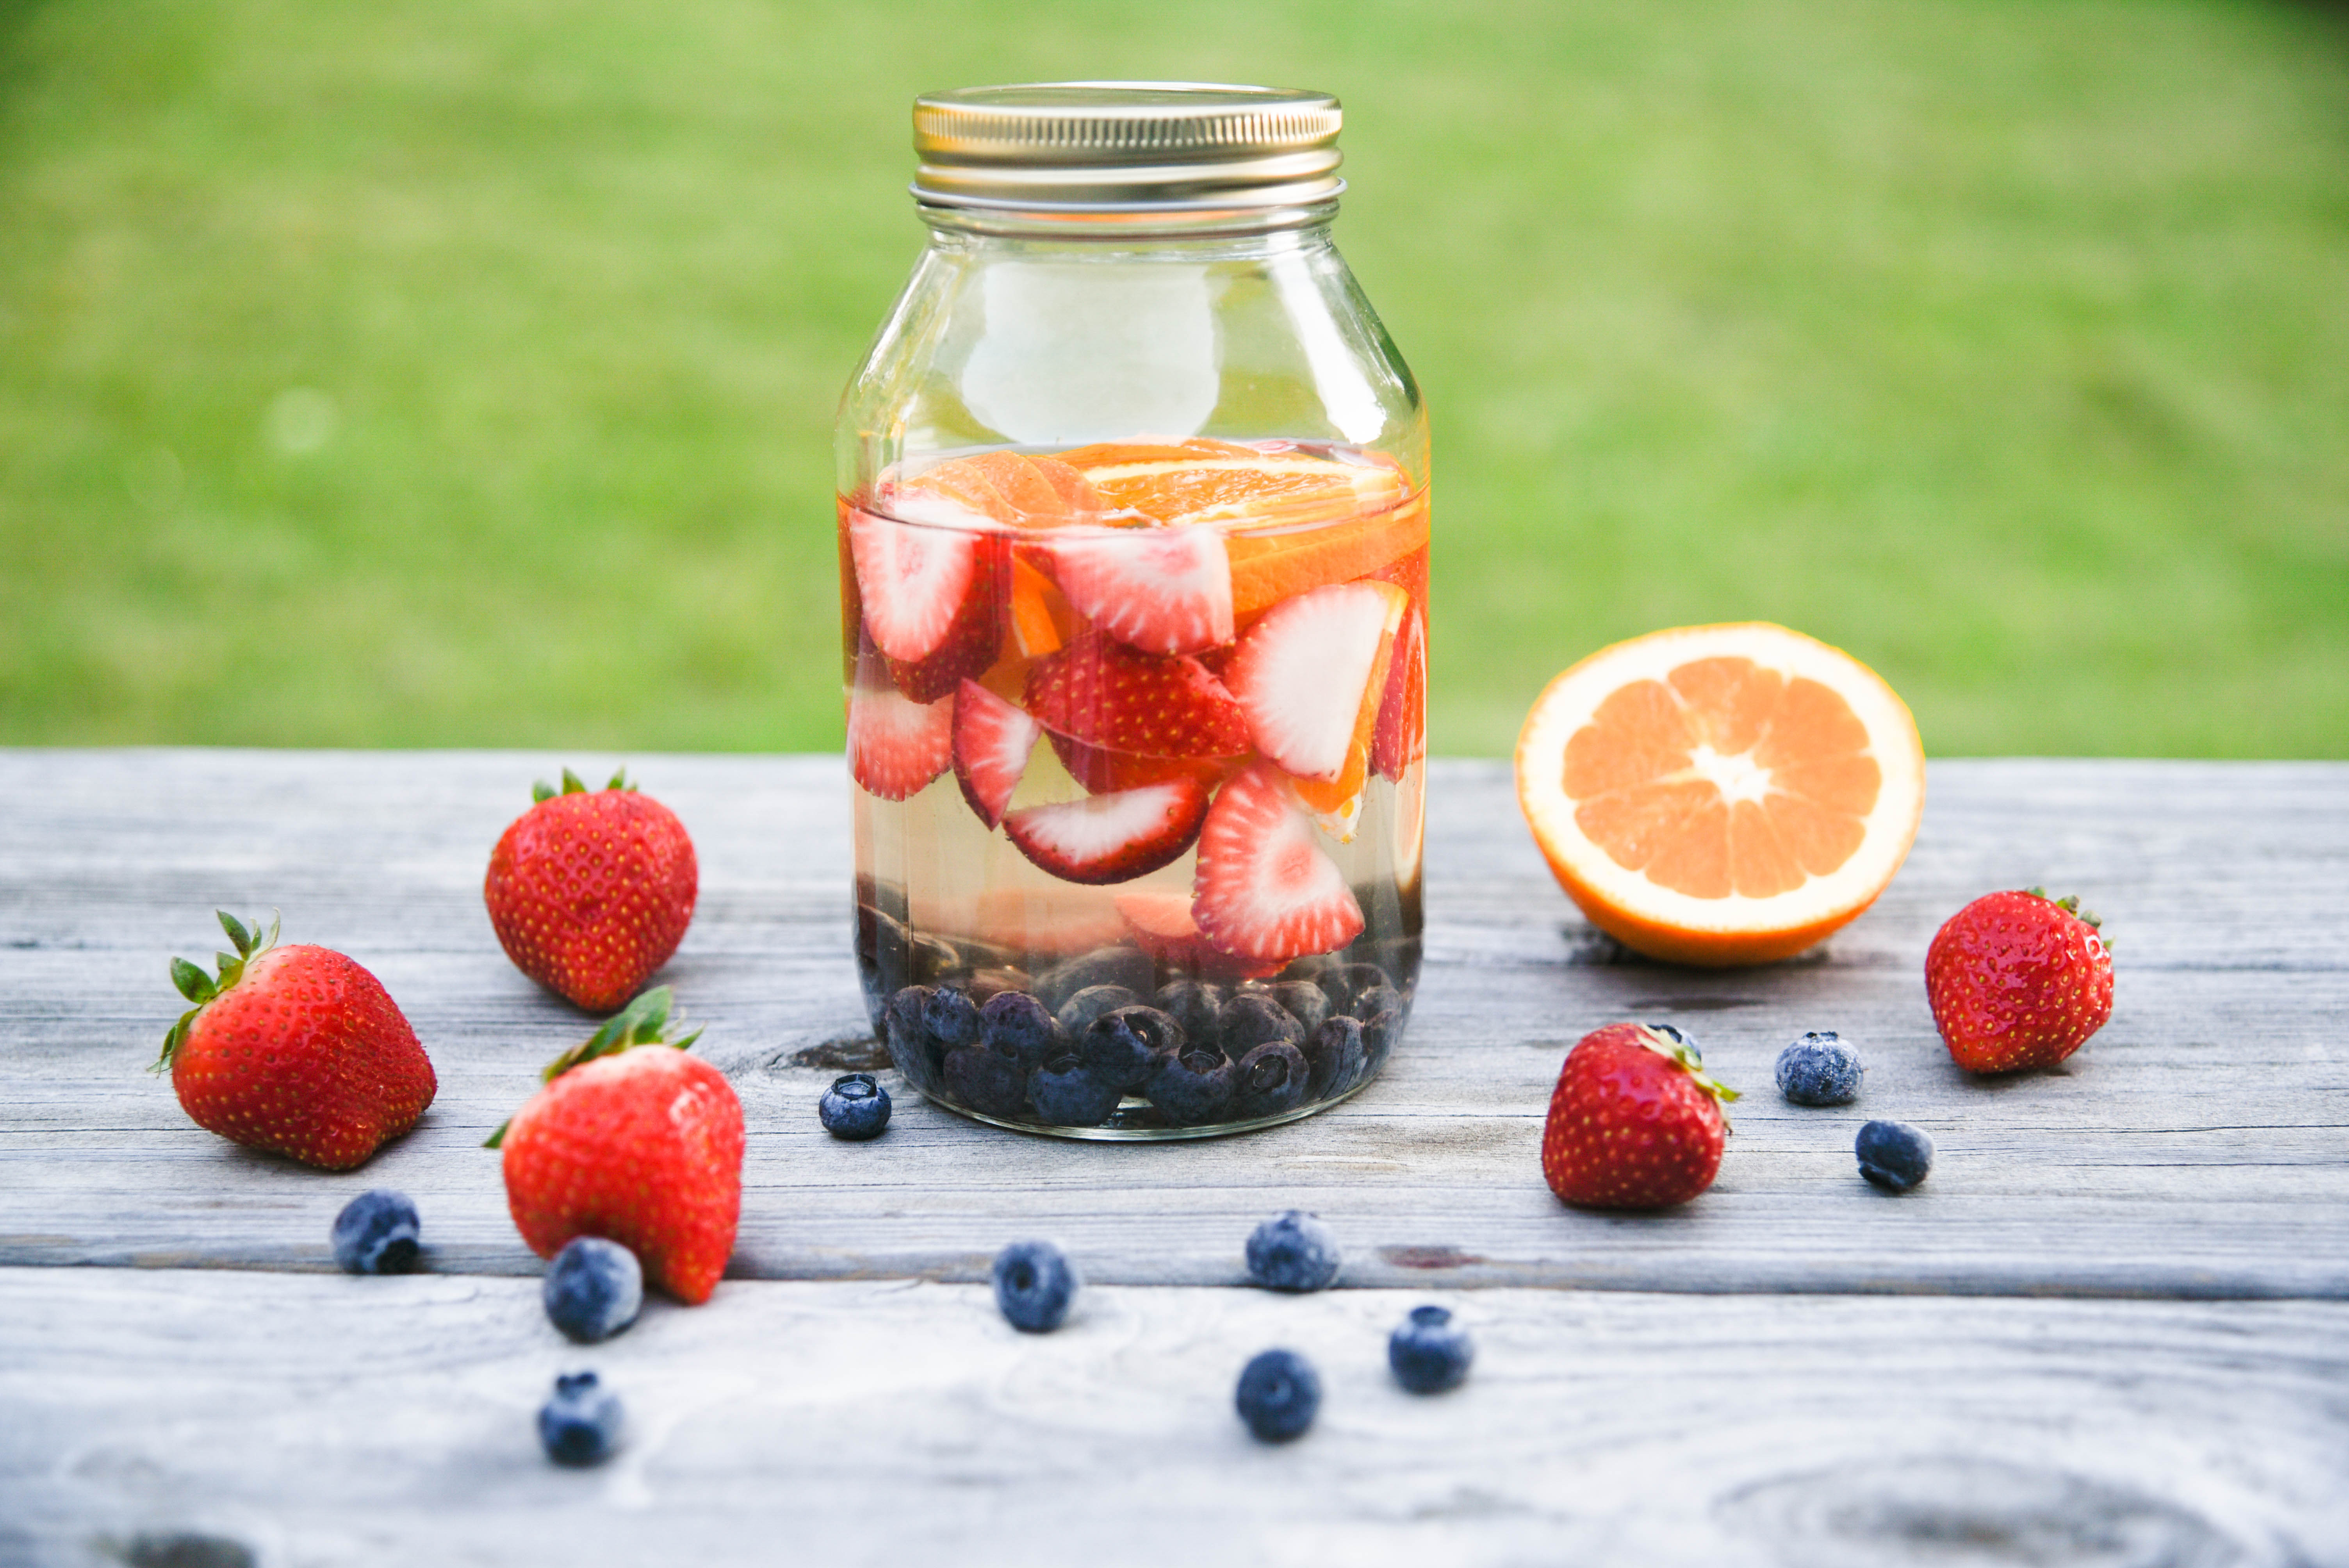 Jar with strawberries, oranges and blueberies